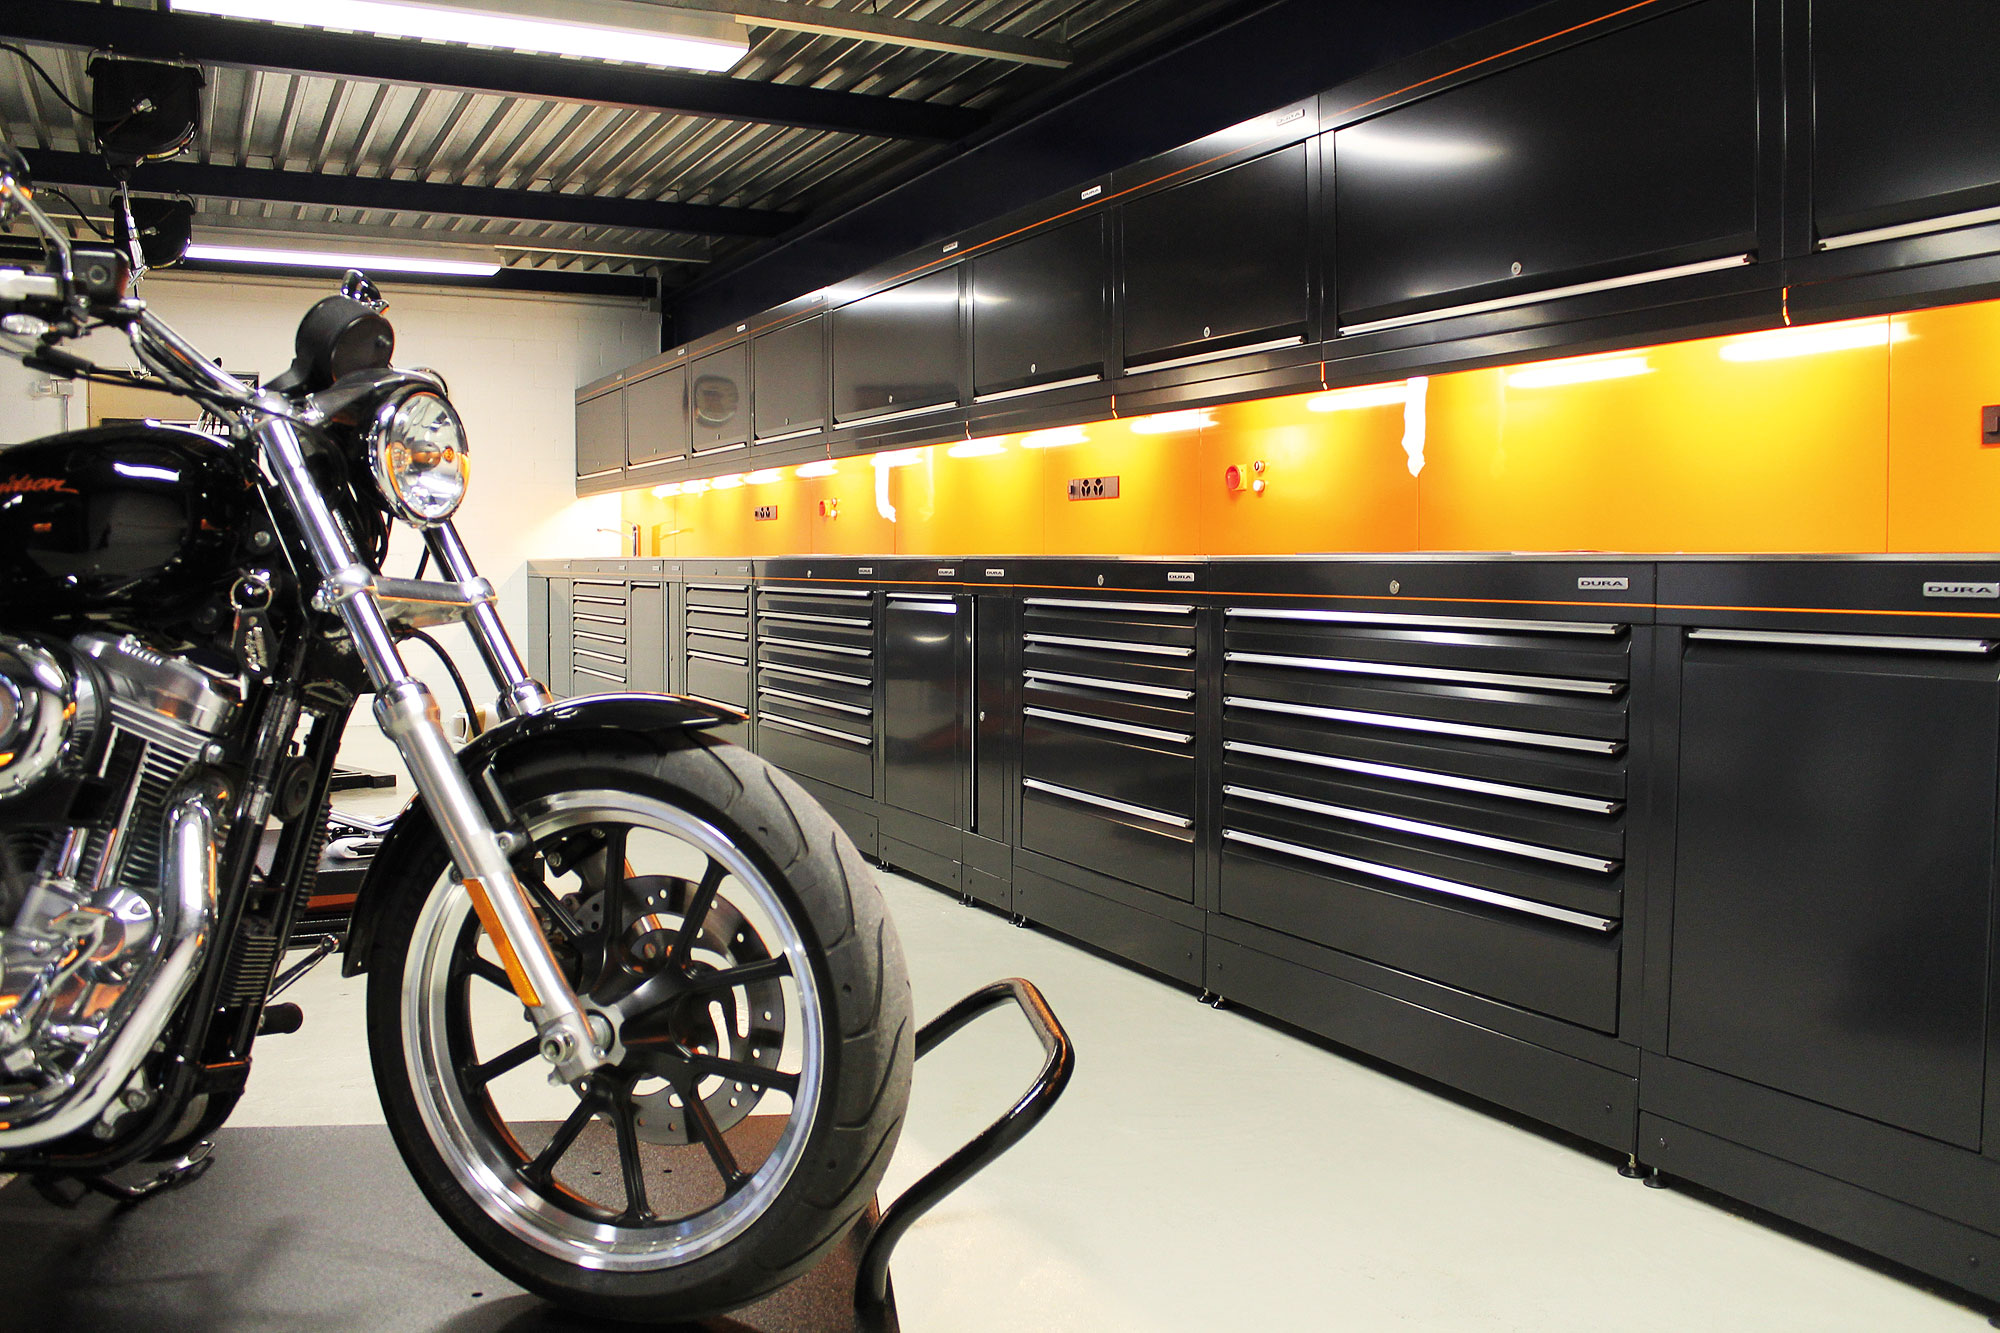 Designer garage interiors   the new must have. garage interiors   the new must have